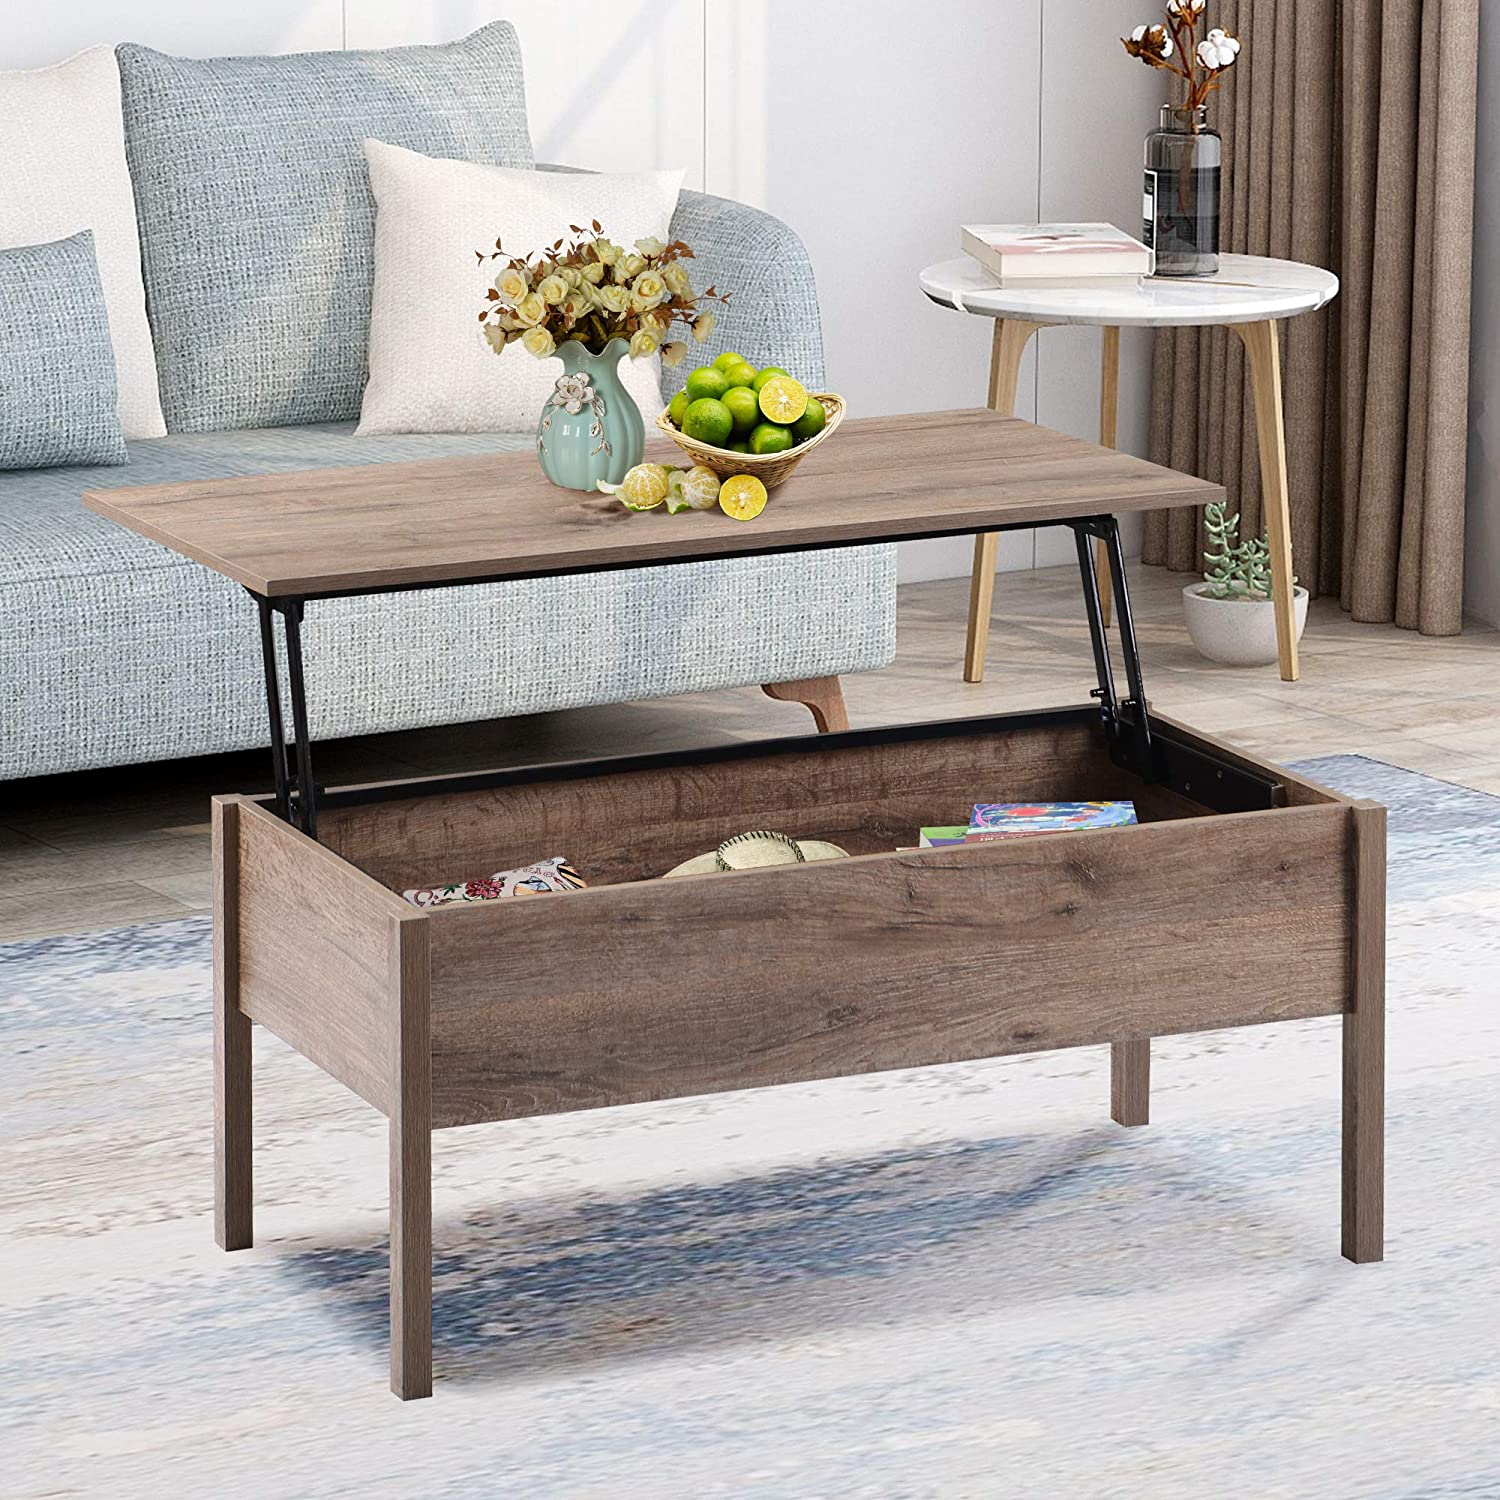 Living Room Furniture Itaar Lift Top Coffee Table Dining Table For Living Home Display With Hidden Storage Compartment Storage Space And Lift Tabletop Walnut Home Kitchen Belasidevelopers Co Ke